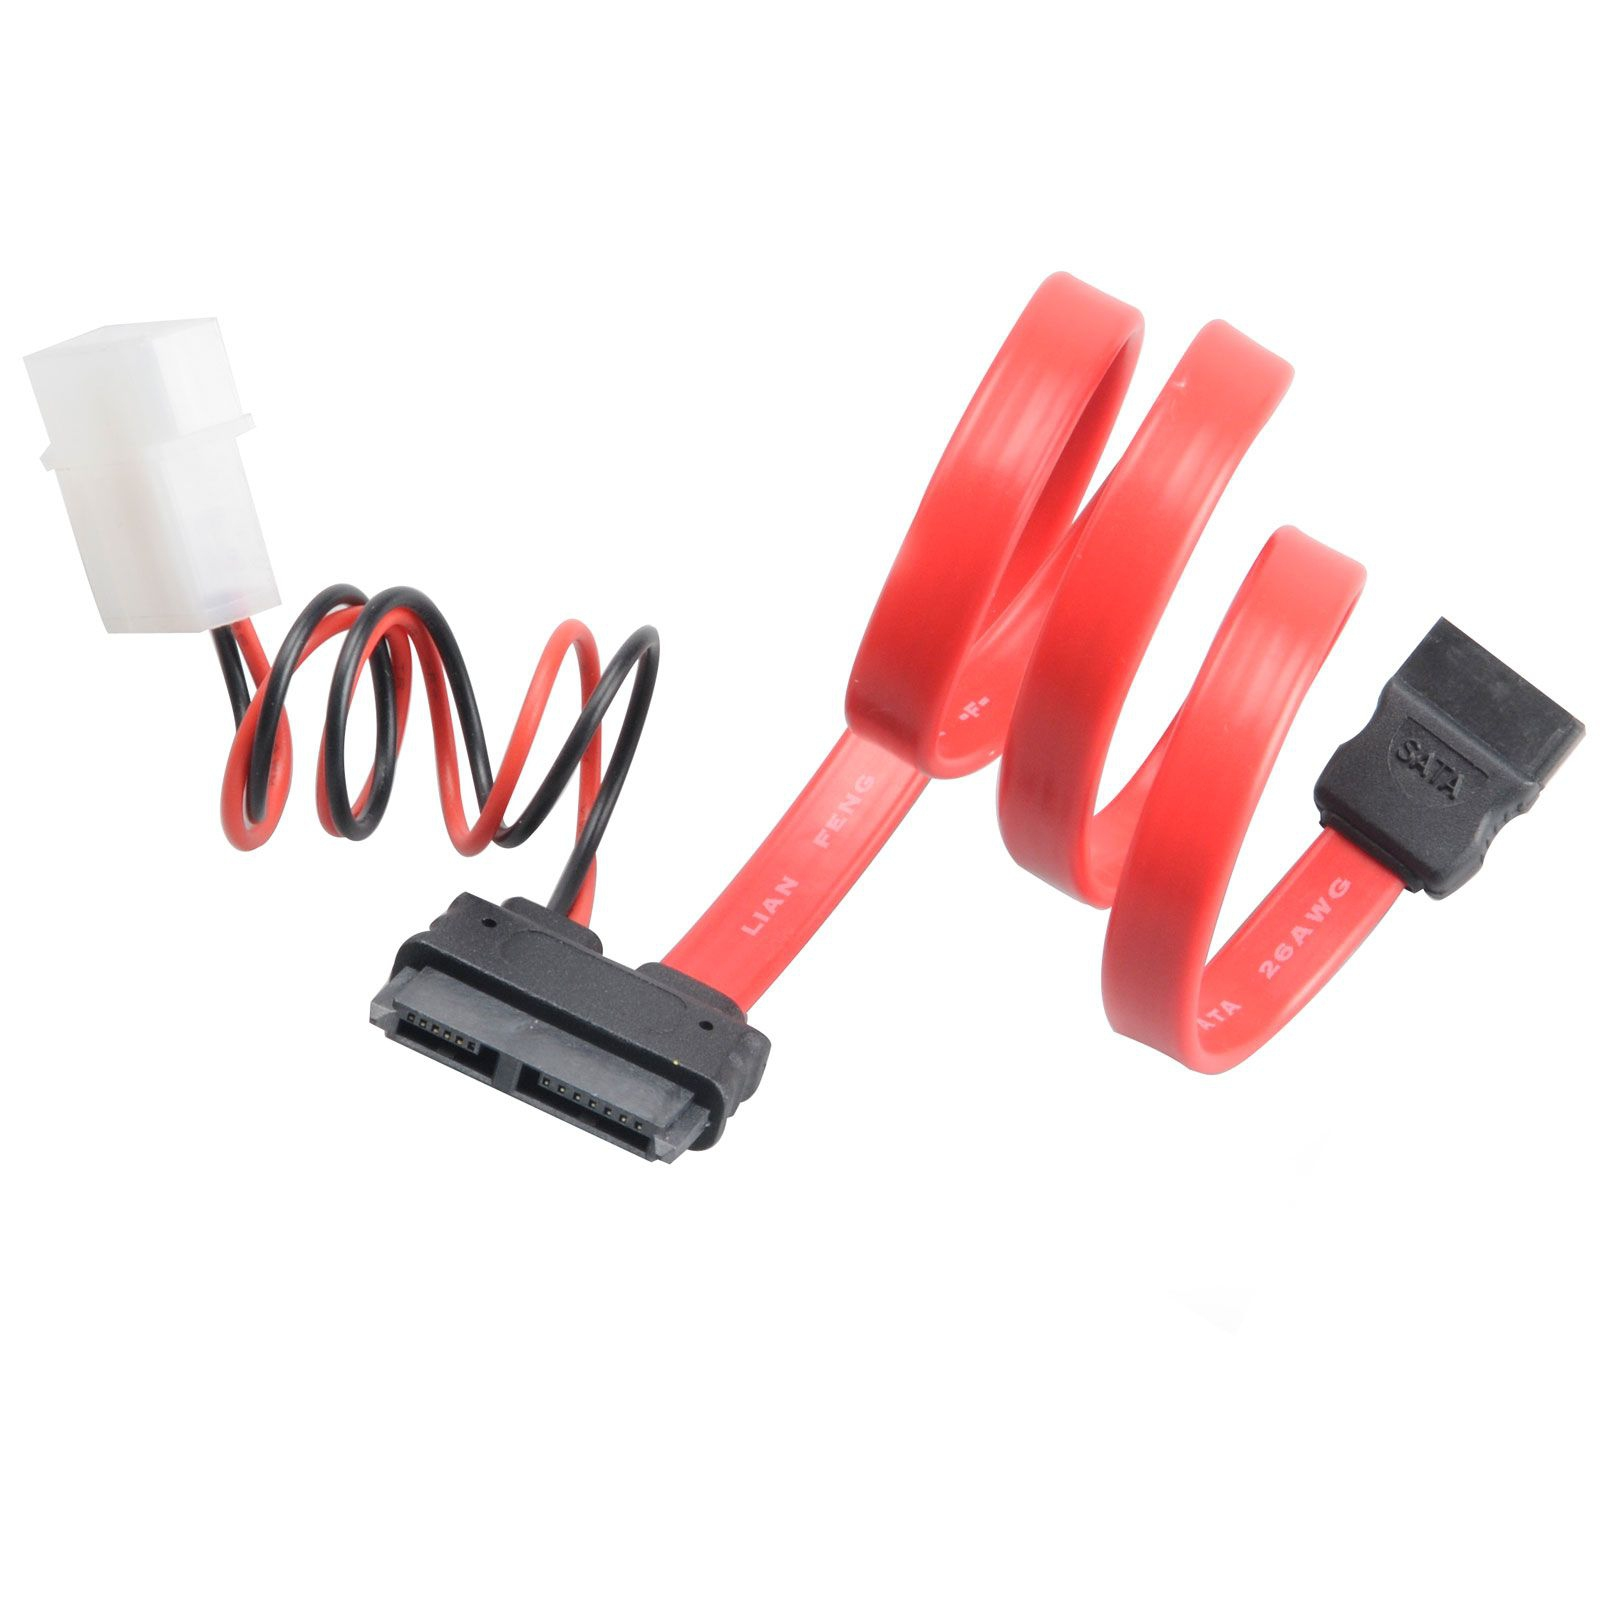 Akasa 40cm SATA cable f/ slimline opticals 4-pin Molex 7-pin SATA, 6-pin SATA Black,Red cable interface/gender adapter